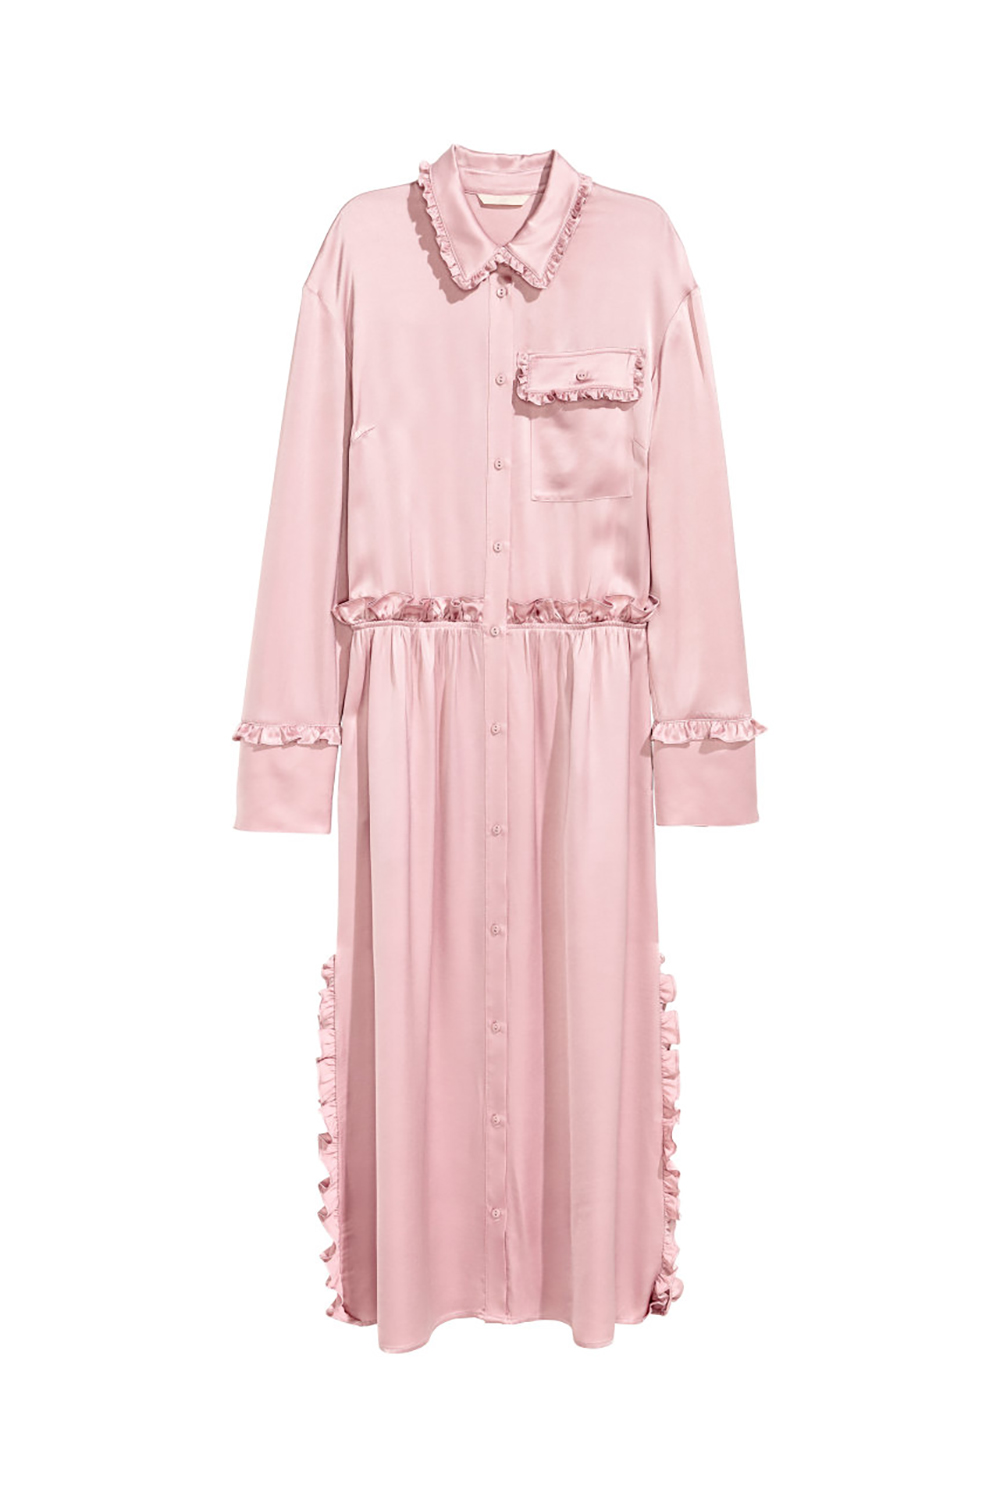 hm-shirt-dress-with-ruffles_rs